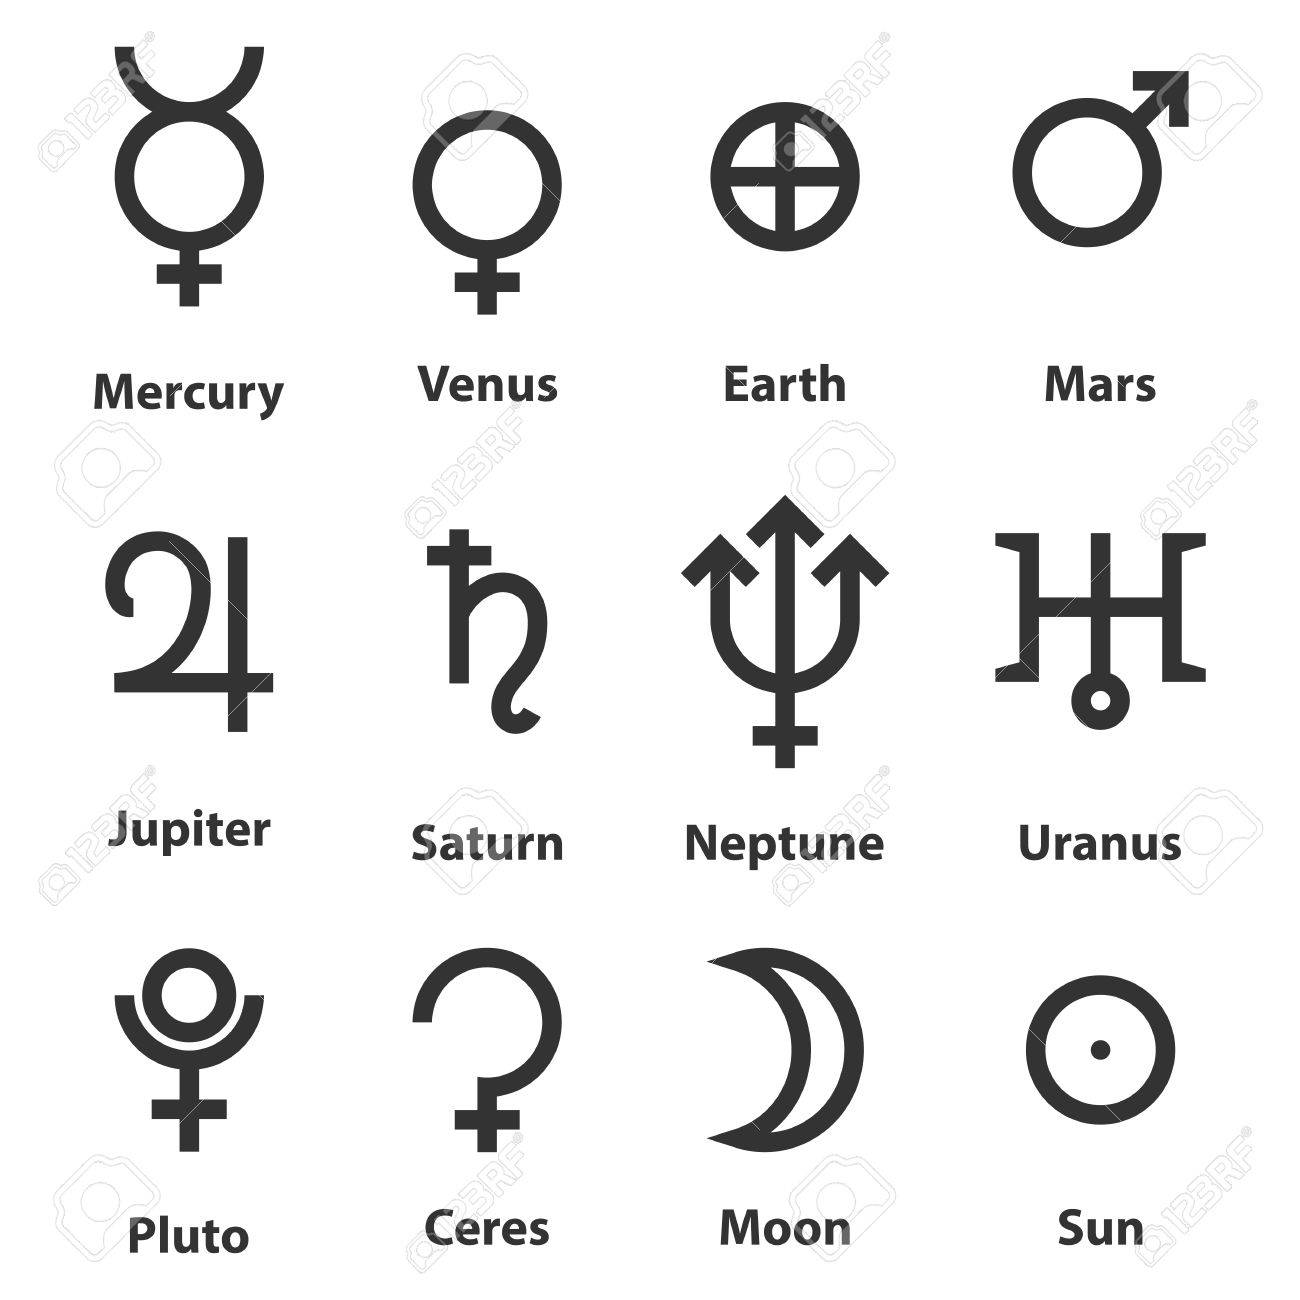 Zodiac and astrology symbols of the planets royalty free cliparts zodiac and astrology symbols of the planets stock vector 68283377 biocorpaavc Gallery